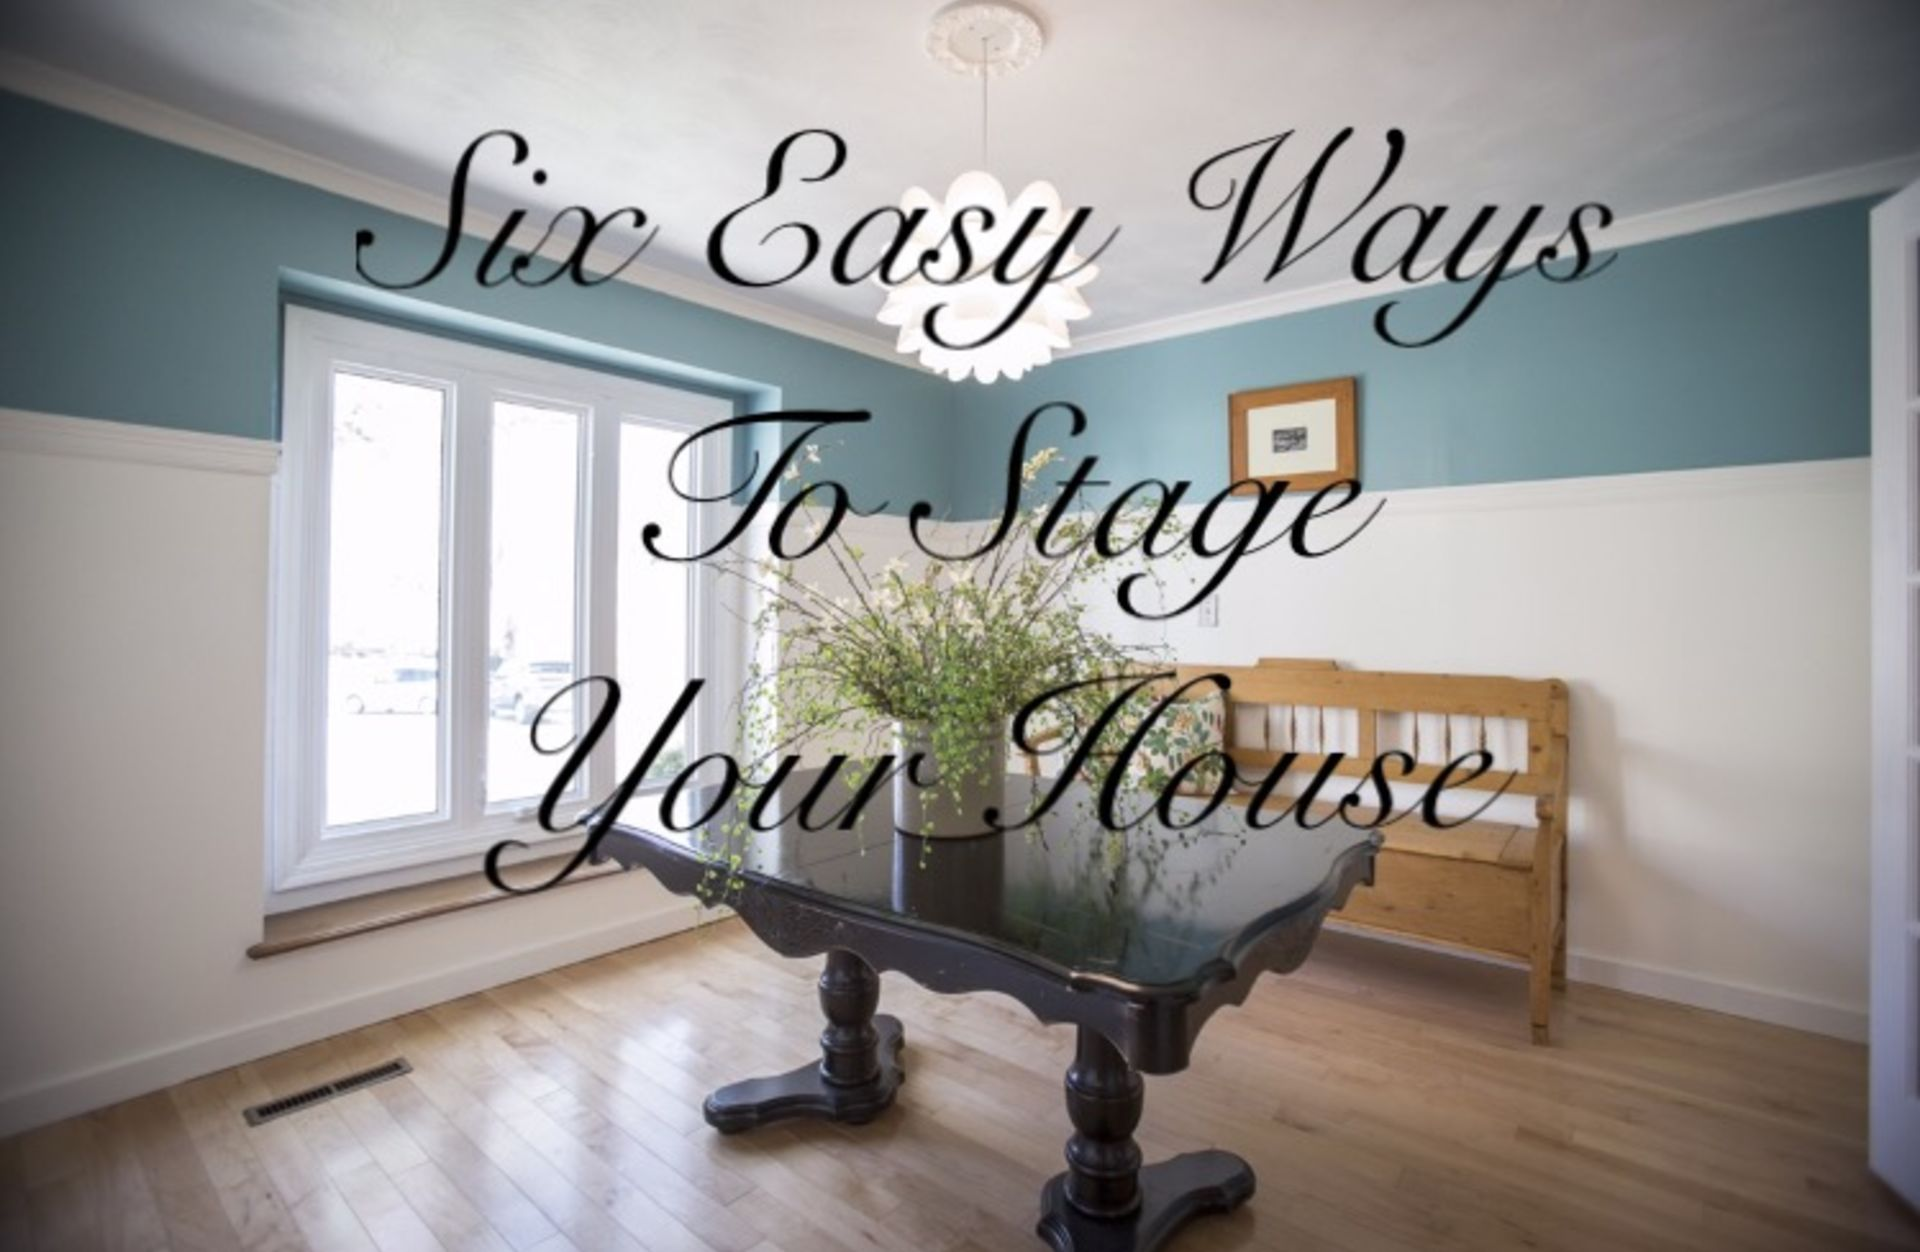 6 Easy Ways to Stage Your House for Sale